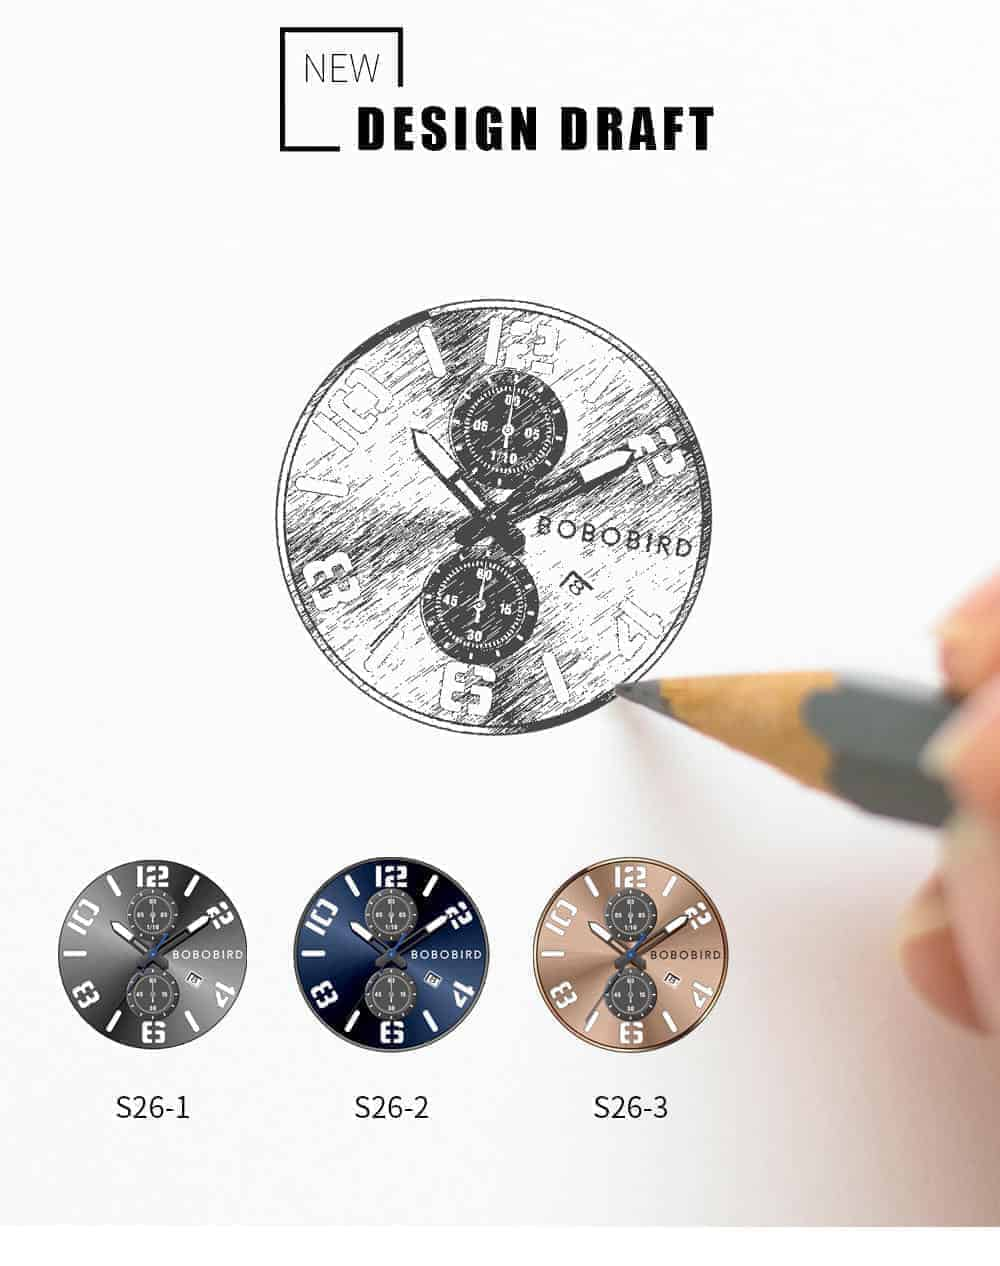 BOBO BIRD Wooden Watches S26 Series Product Details 3